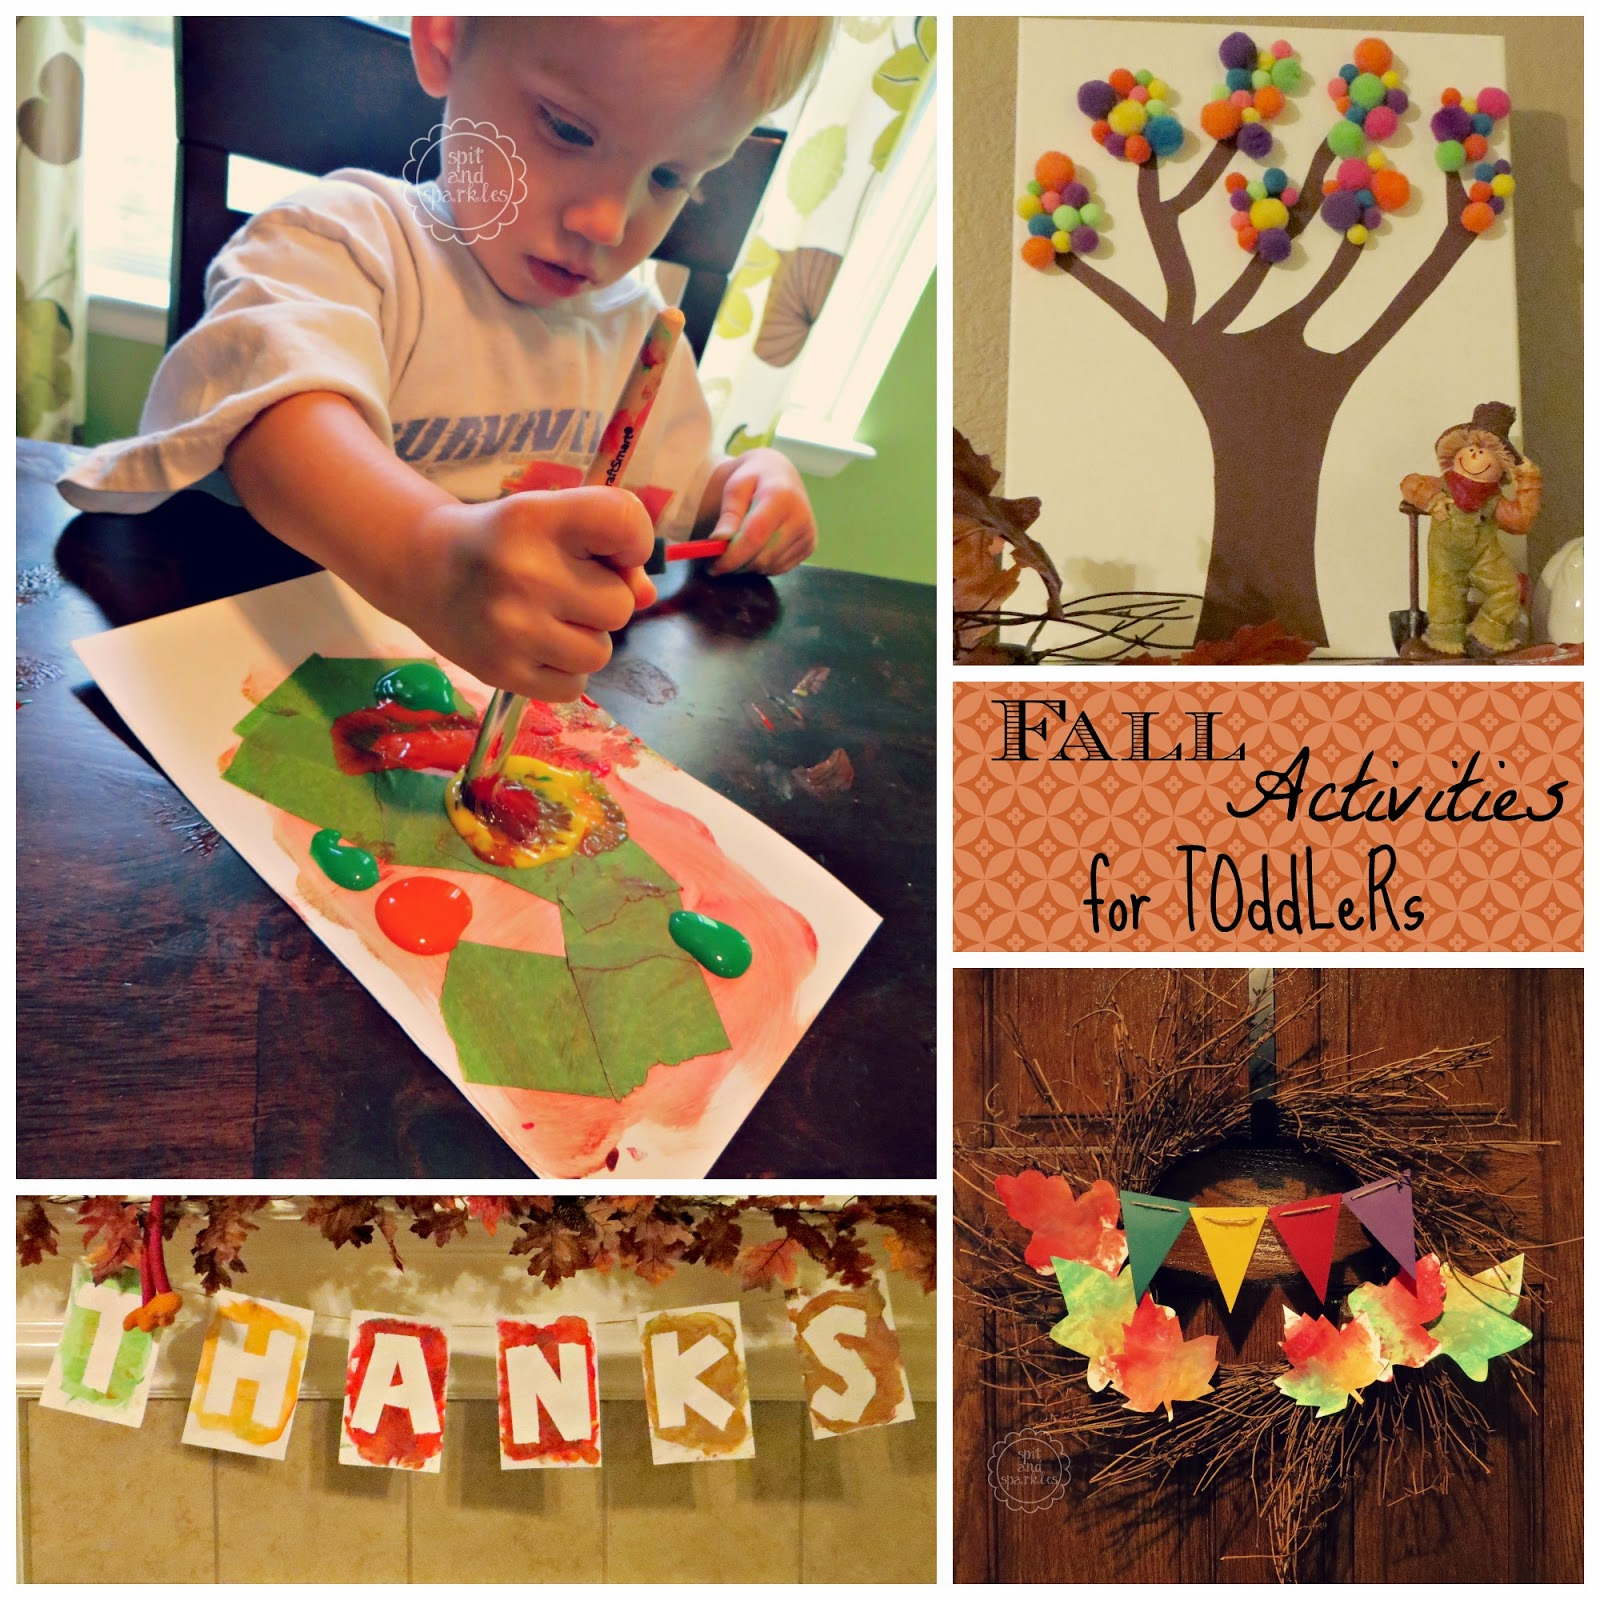 Fun, cheap Fall activities for toddlers. #DIY #kidscrafts #totschool #leaves